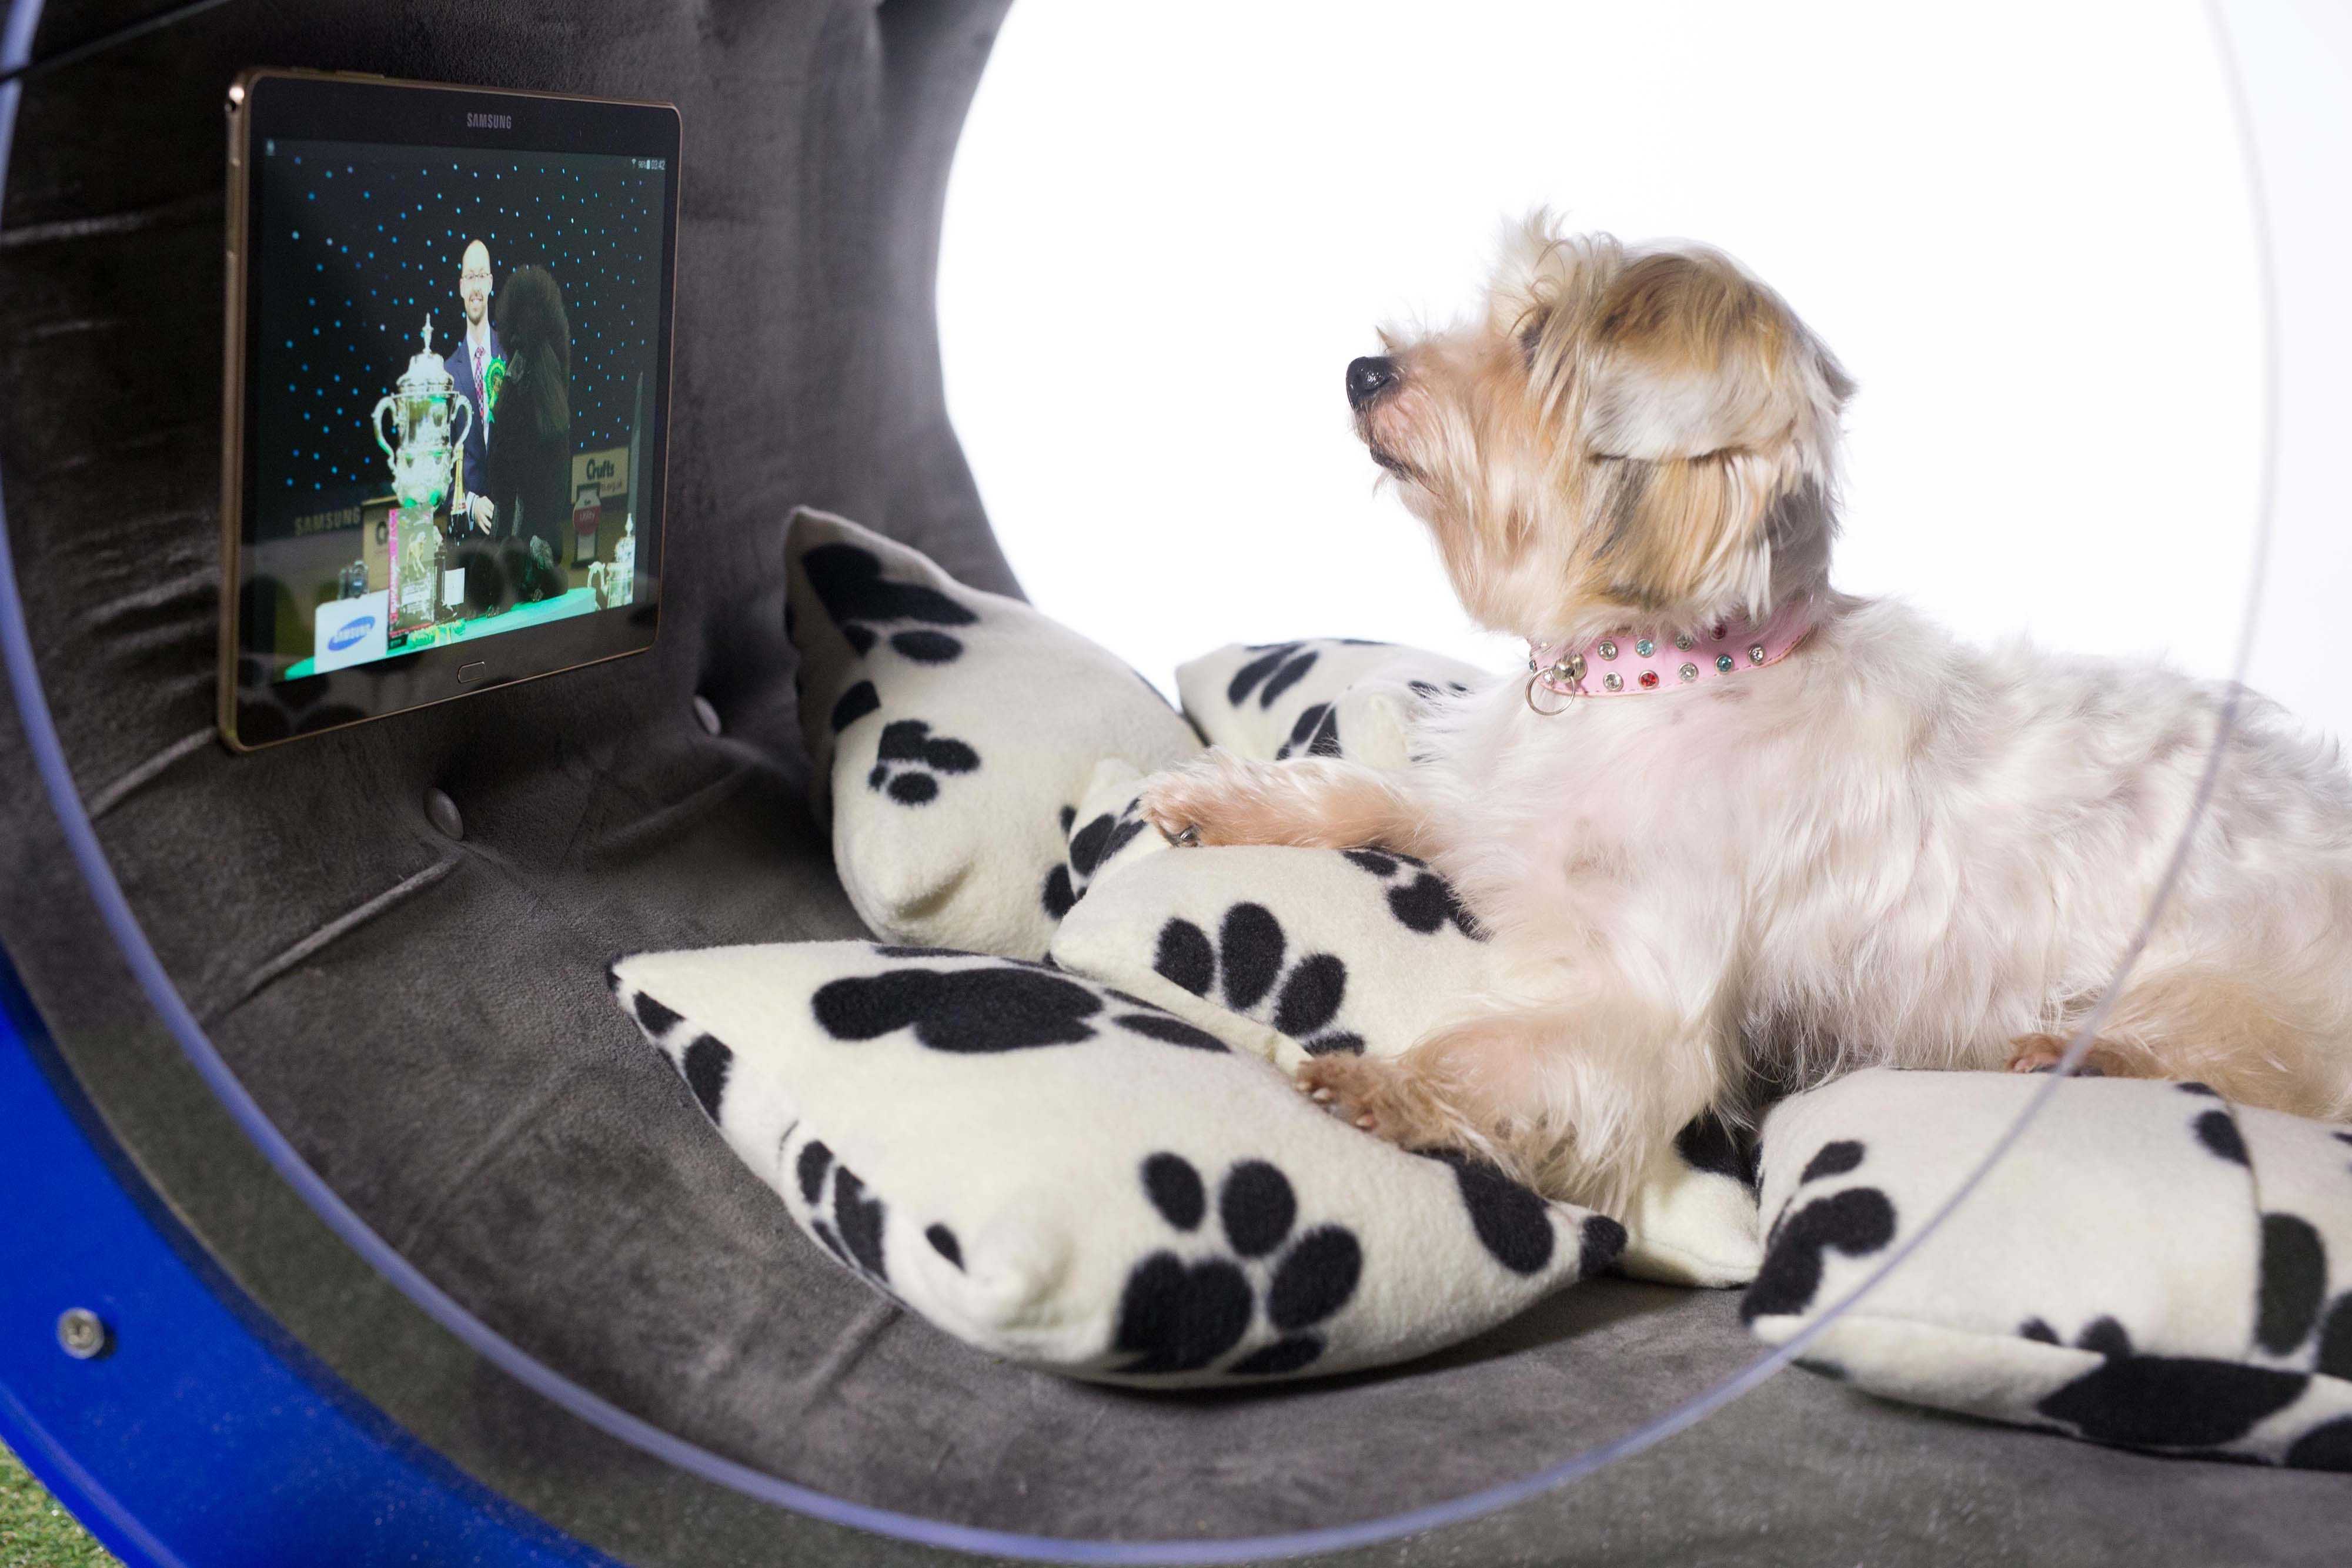 Samsung Dream Doghouse is a smart dog house that puts smart homes to shame, and was developed by more than 10 designers. (image: Samsung Electronics)